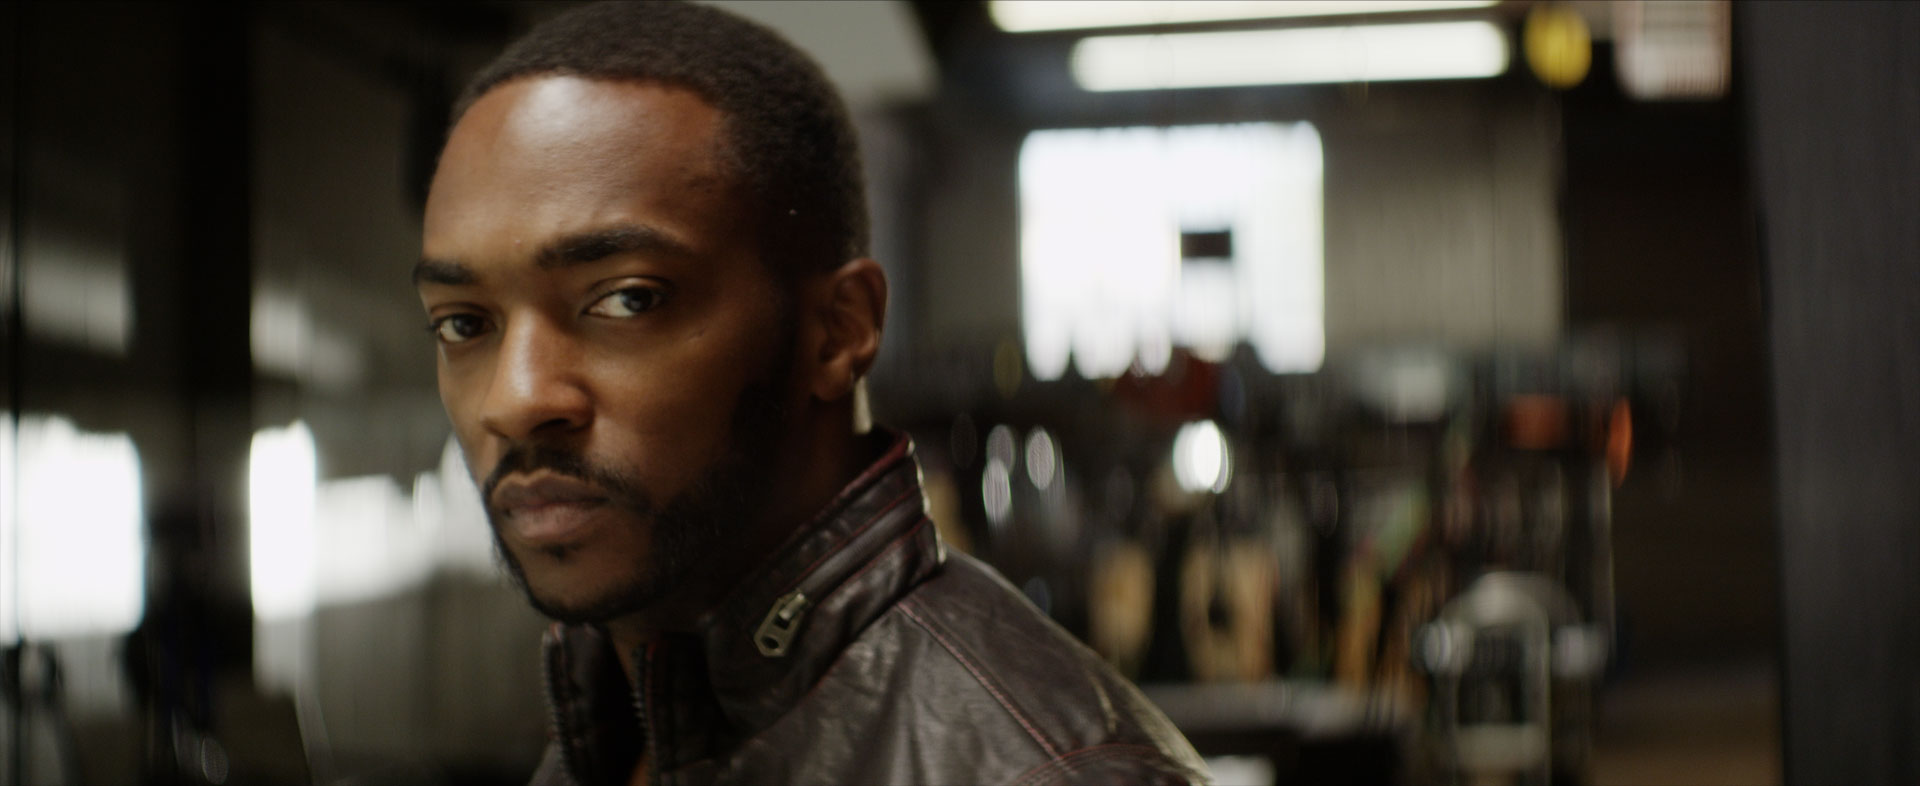 http://www.indiewire.com/wp-content/uploads/2014/05/anthony-mackie-a-girl-a-gun.0000664.jpg